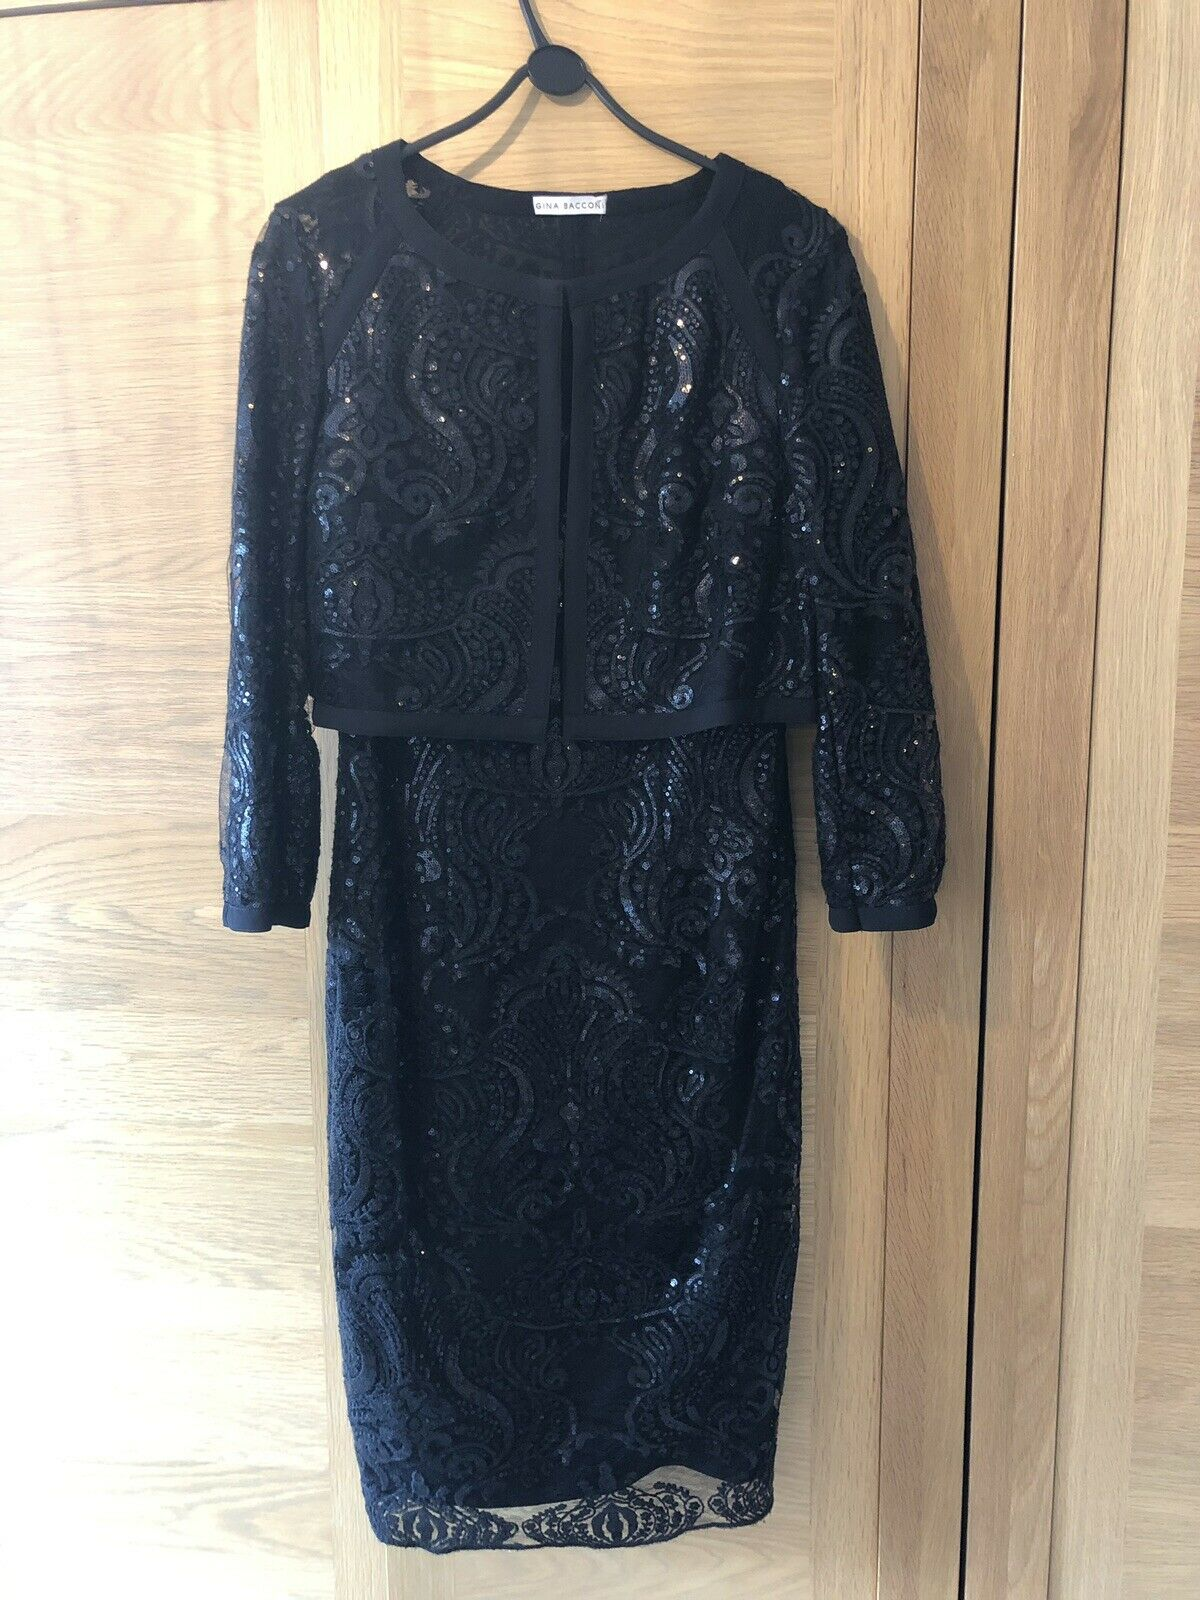 Gina Bacconi Black Size 12 Sequin Embesselled Dress And Jacket